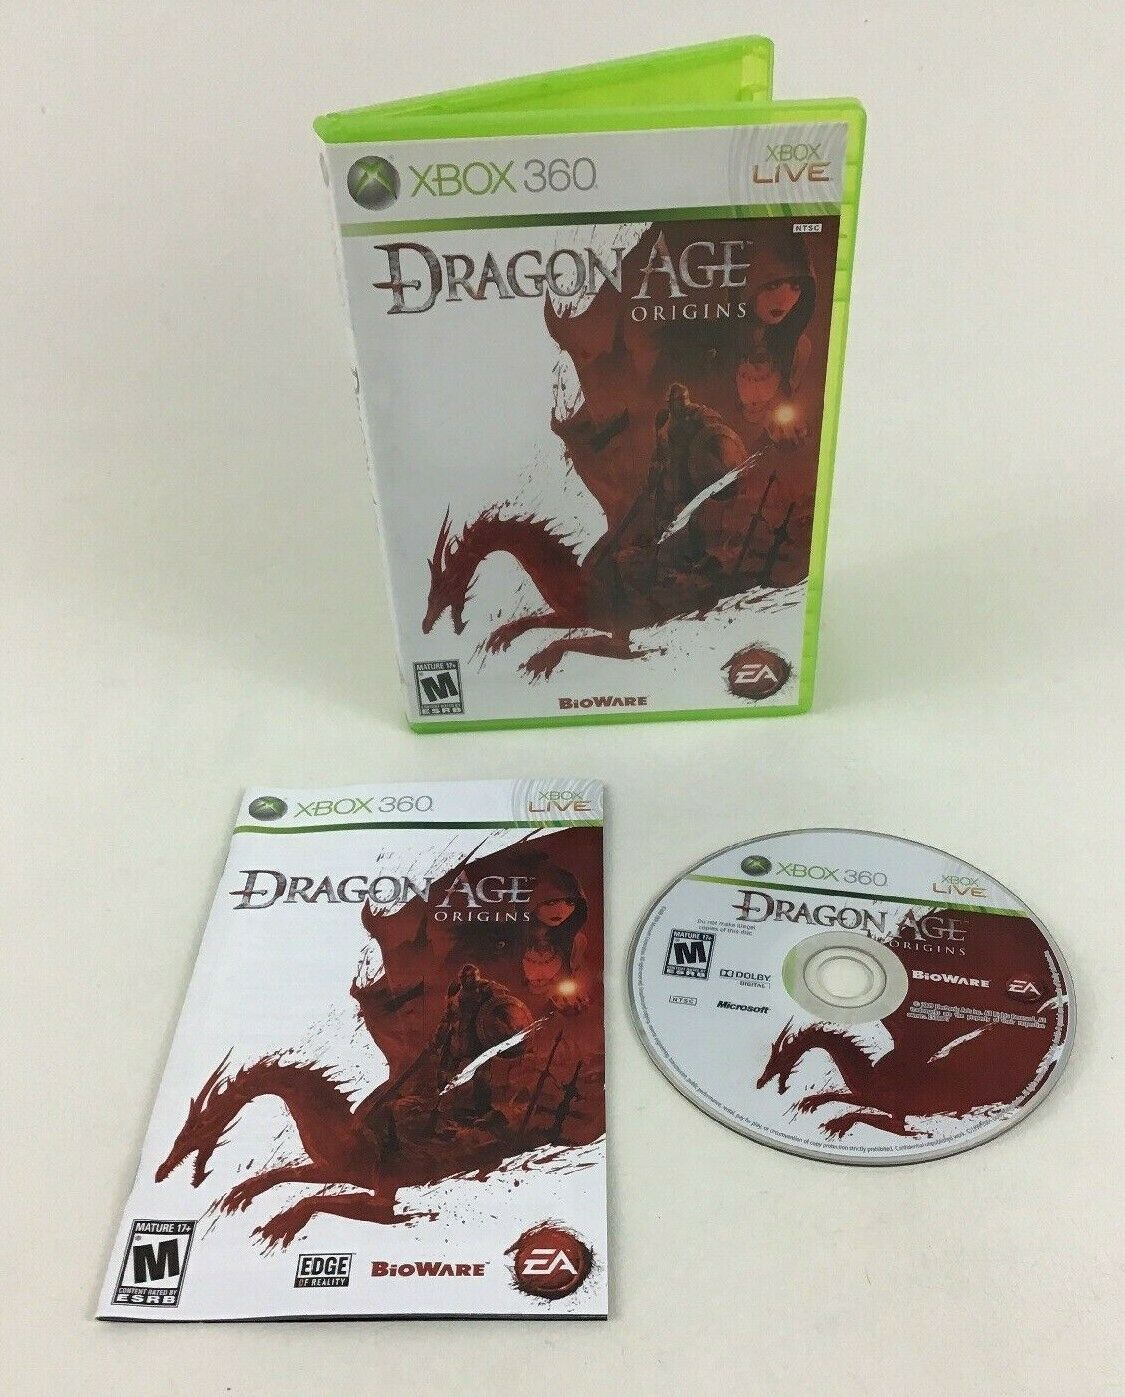 Dragon Age Origins Xbox 360 Video Game Bioware EA 2009 M-Rated Complete Manual